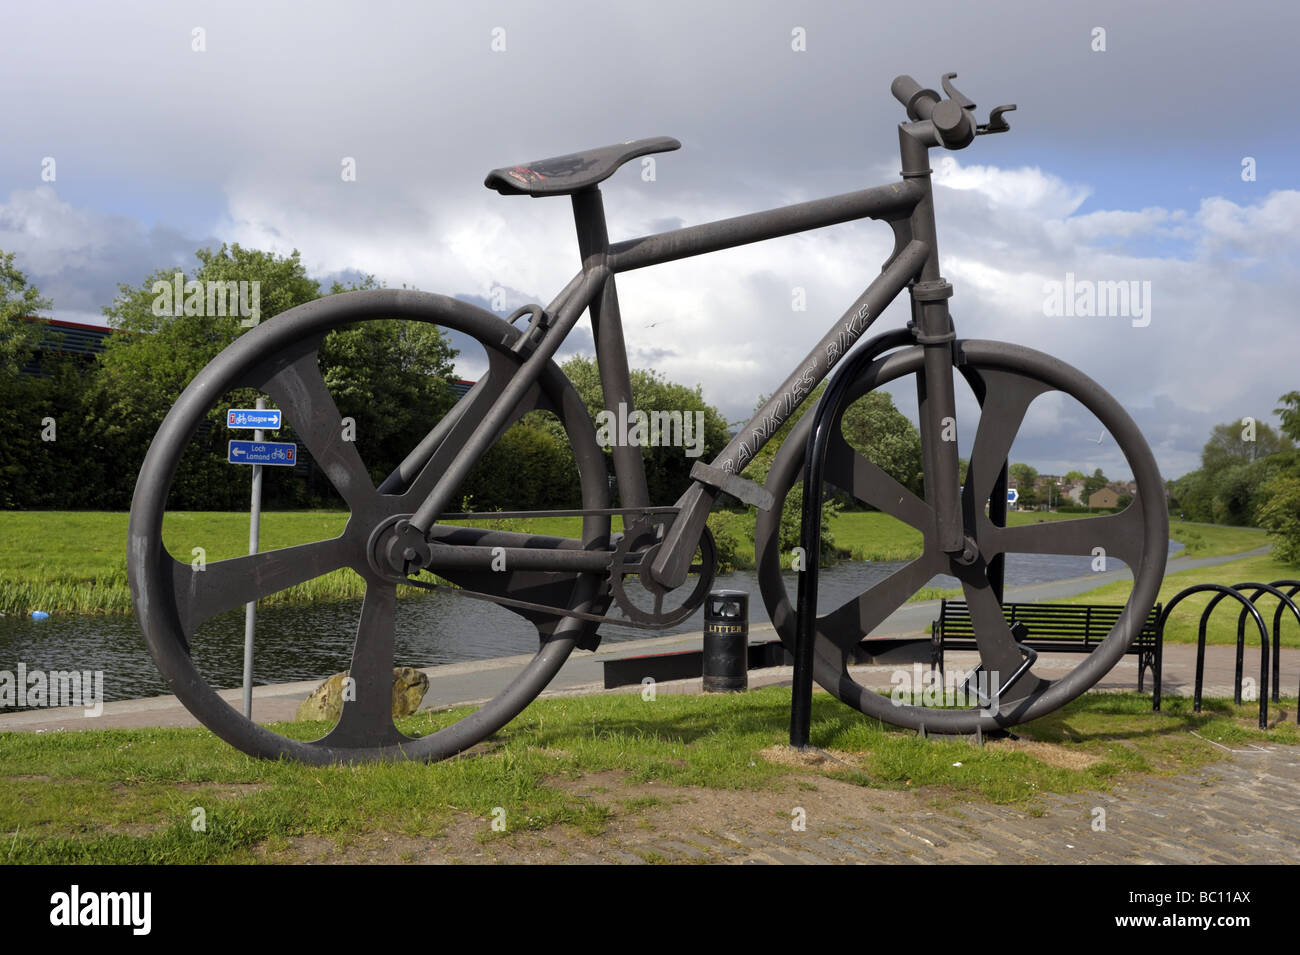 Giant bike sculpture at Clydebank, Glasgow, Scotland, on SUSTRANS cycling route 7 alongside Forth and Clyde Canal - Stock Image